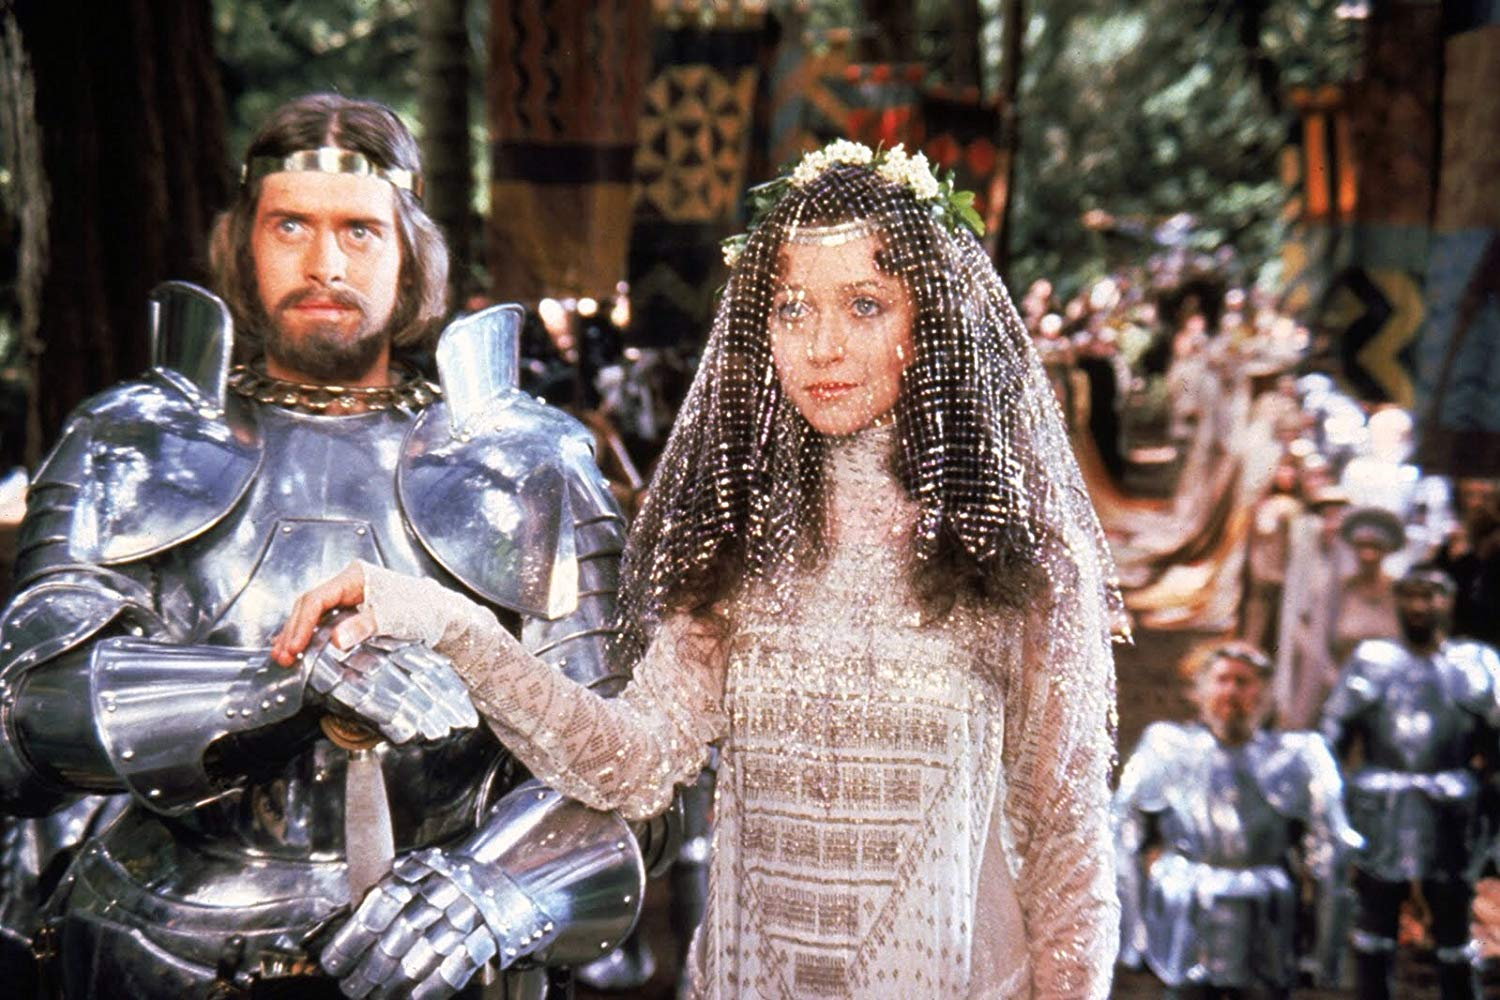 The wedding of King Arthur (Nigel Terry) and Guenevere (Cherie Lunghi) in Excalibur (1981)